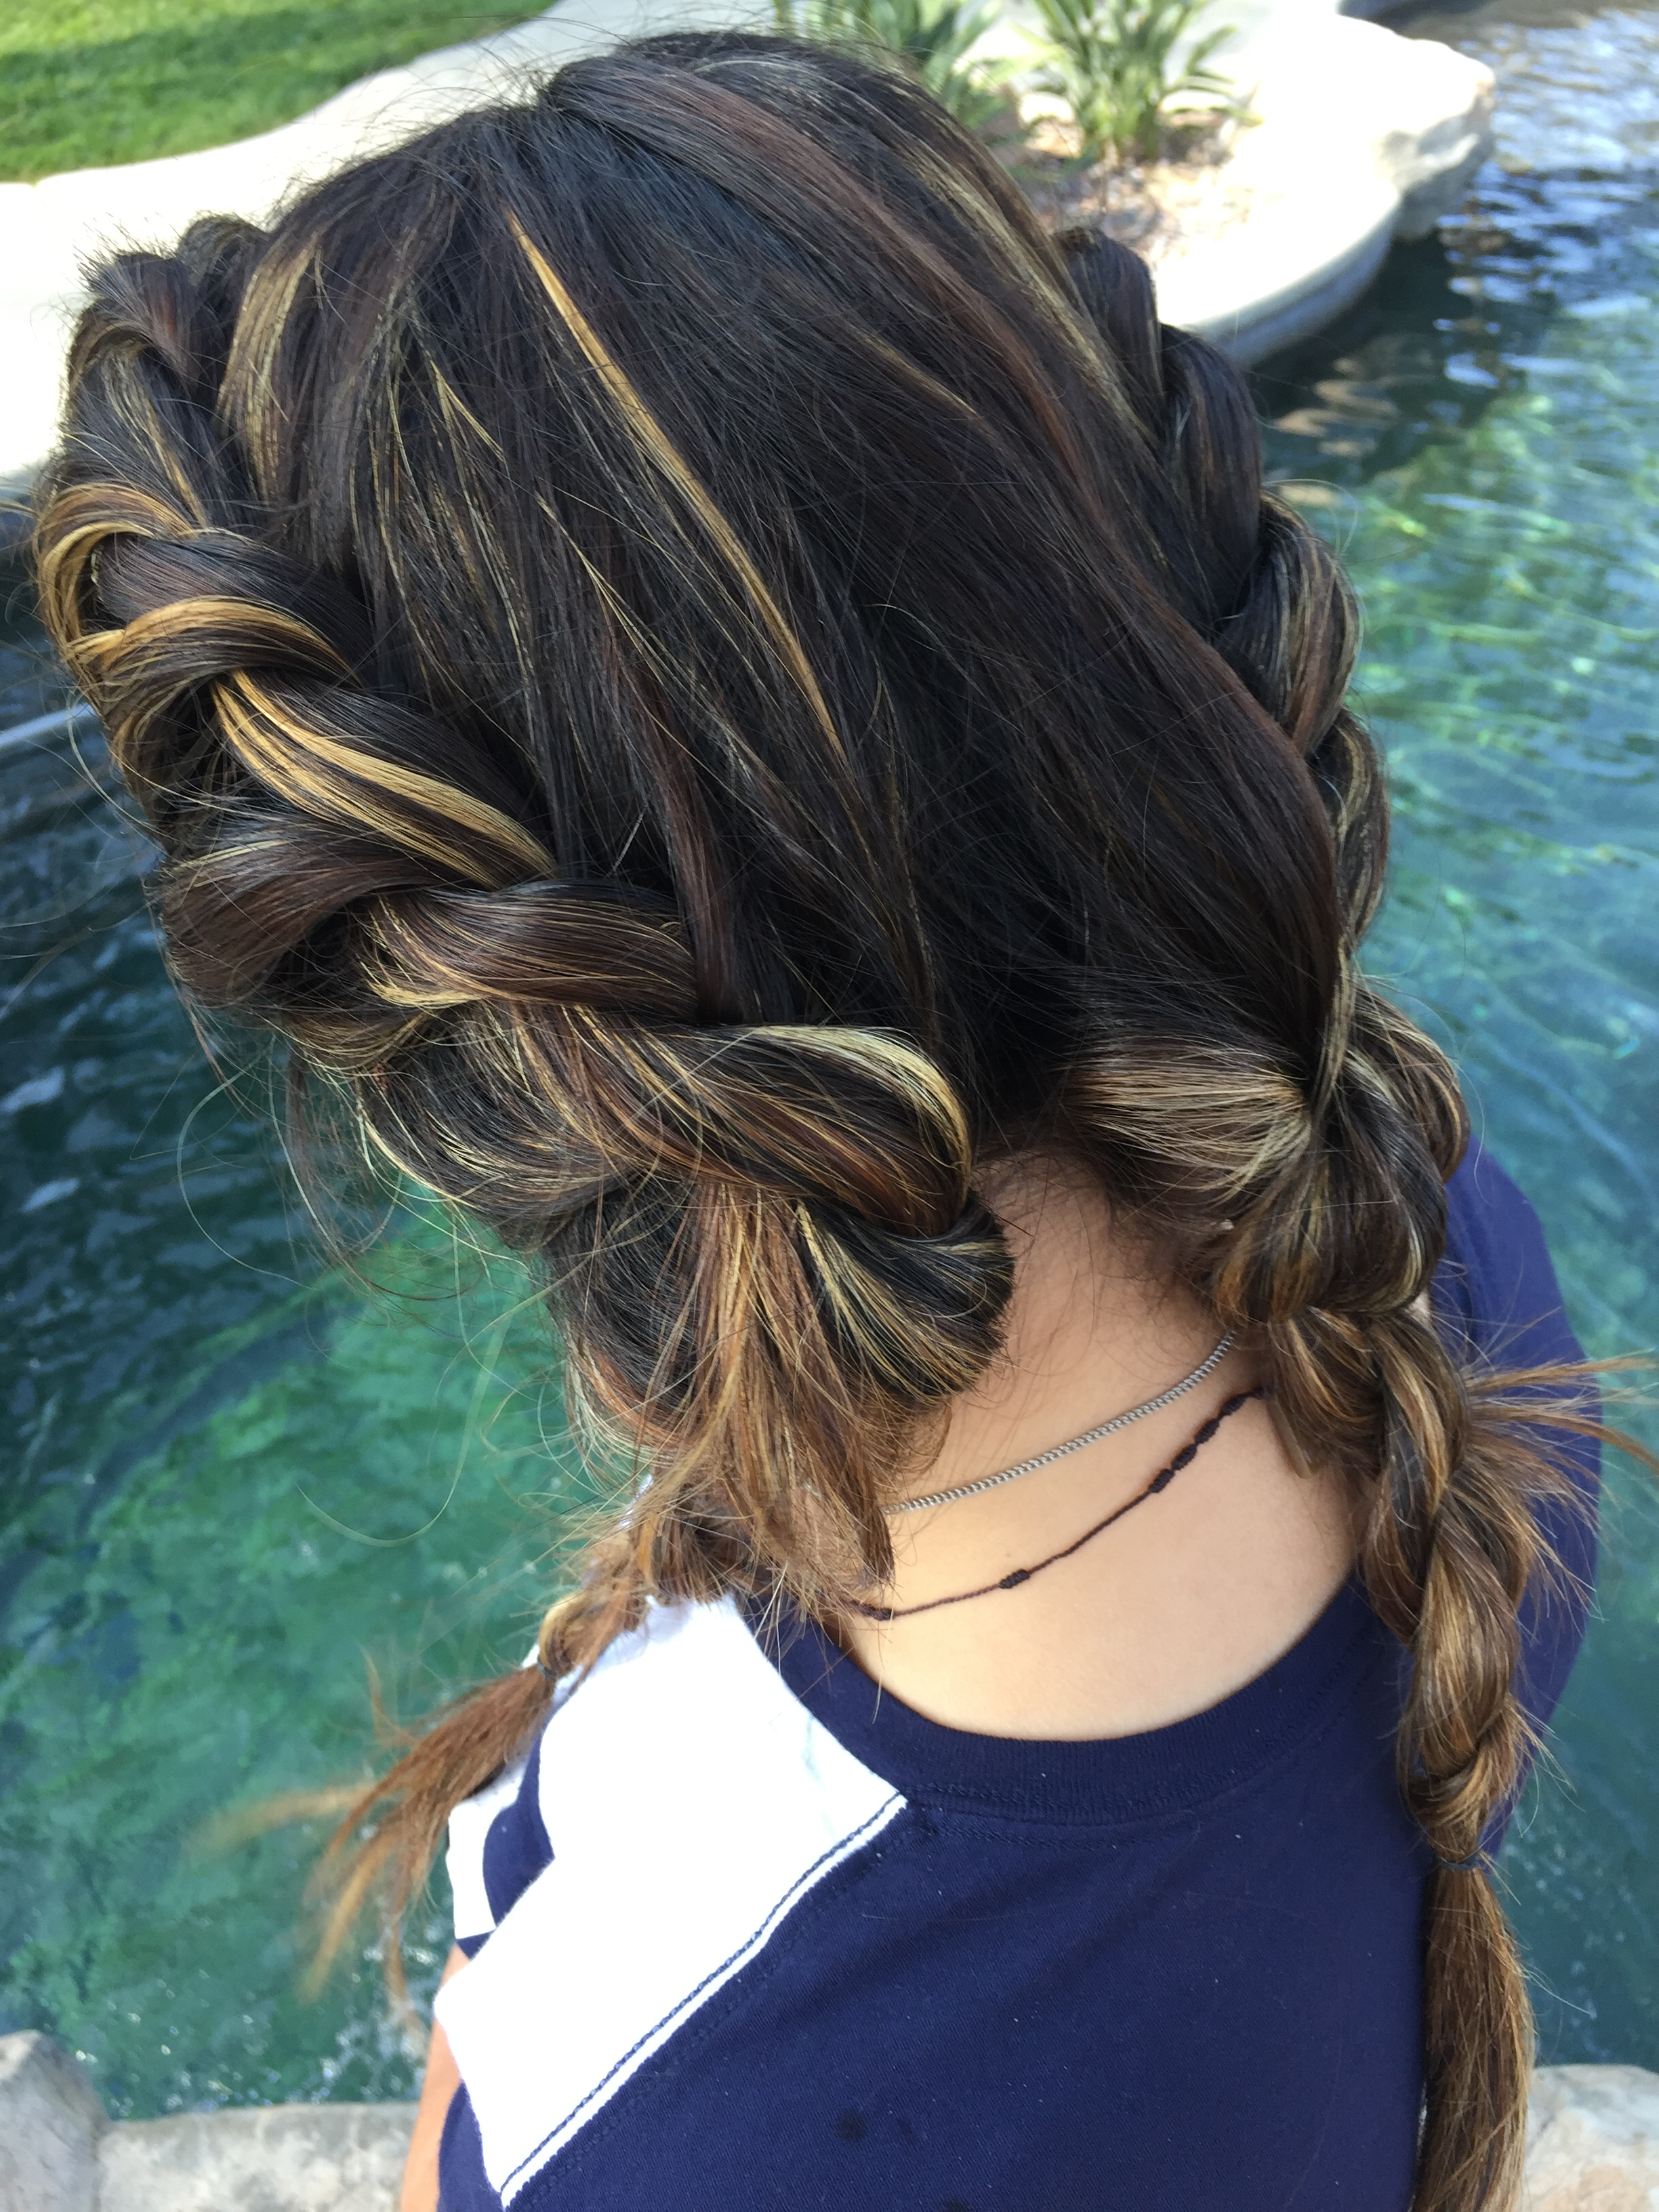 Diy Overnight Curls/waves – Seton Girls' Hairstyles Throughout Well Liked Dramatic Rope Twisted Braid Hairstyles (Gallery 20 of 20)